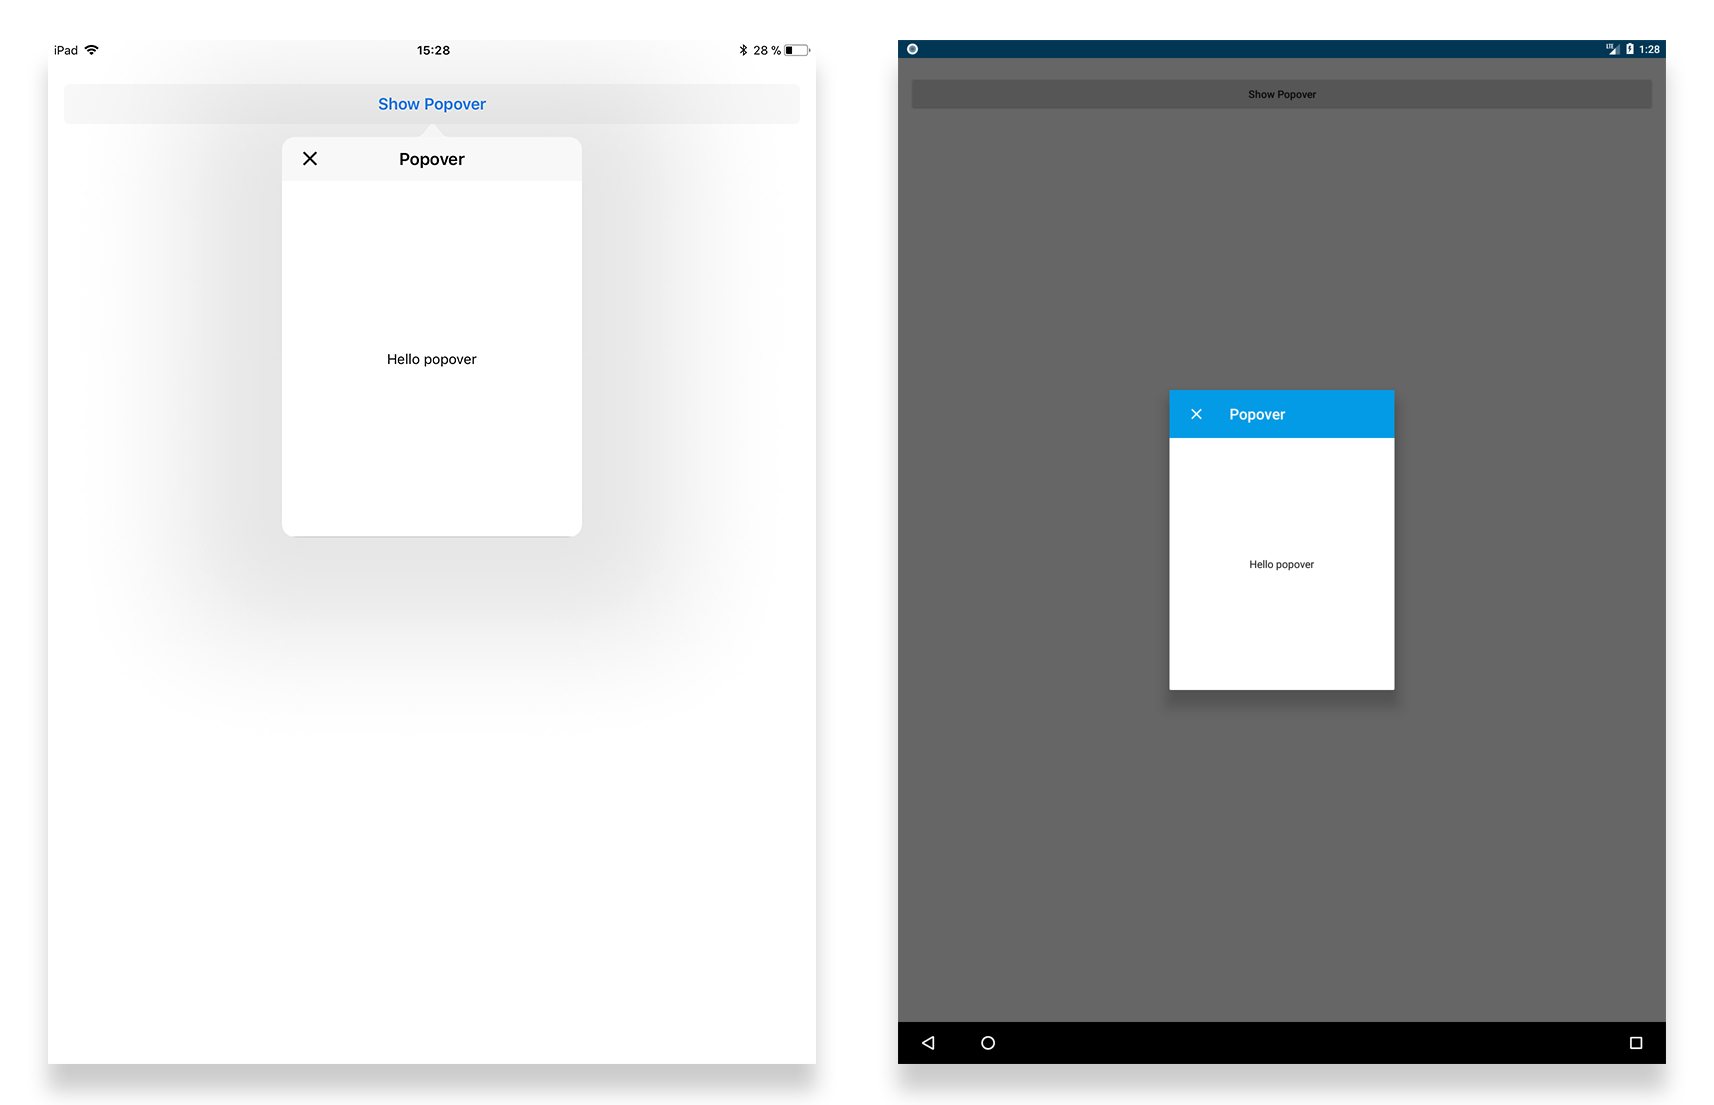 Tabris.js 2.5 released with support for gradients, popover window and more